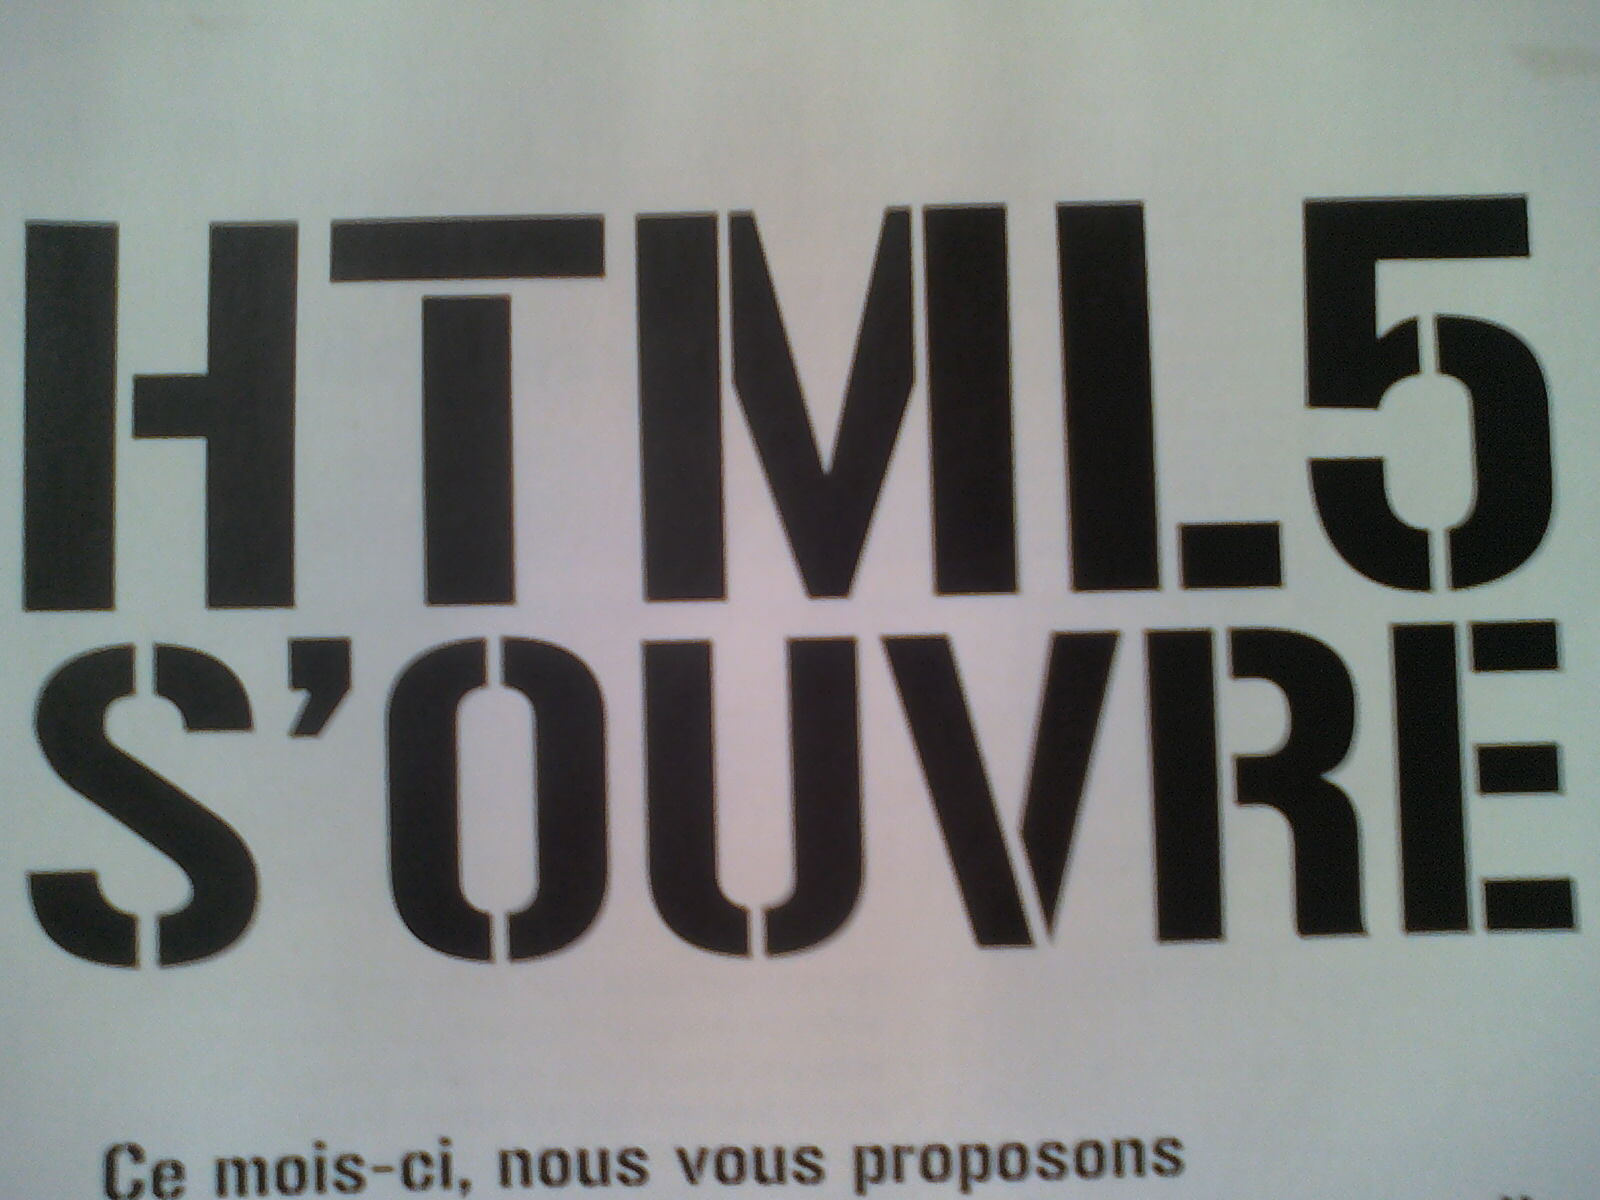 HTML 5 S'OUVRE